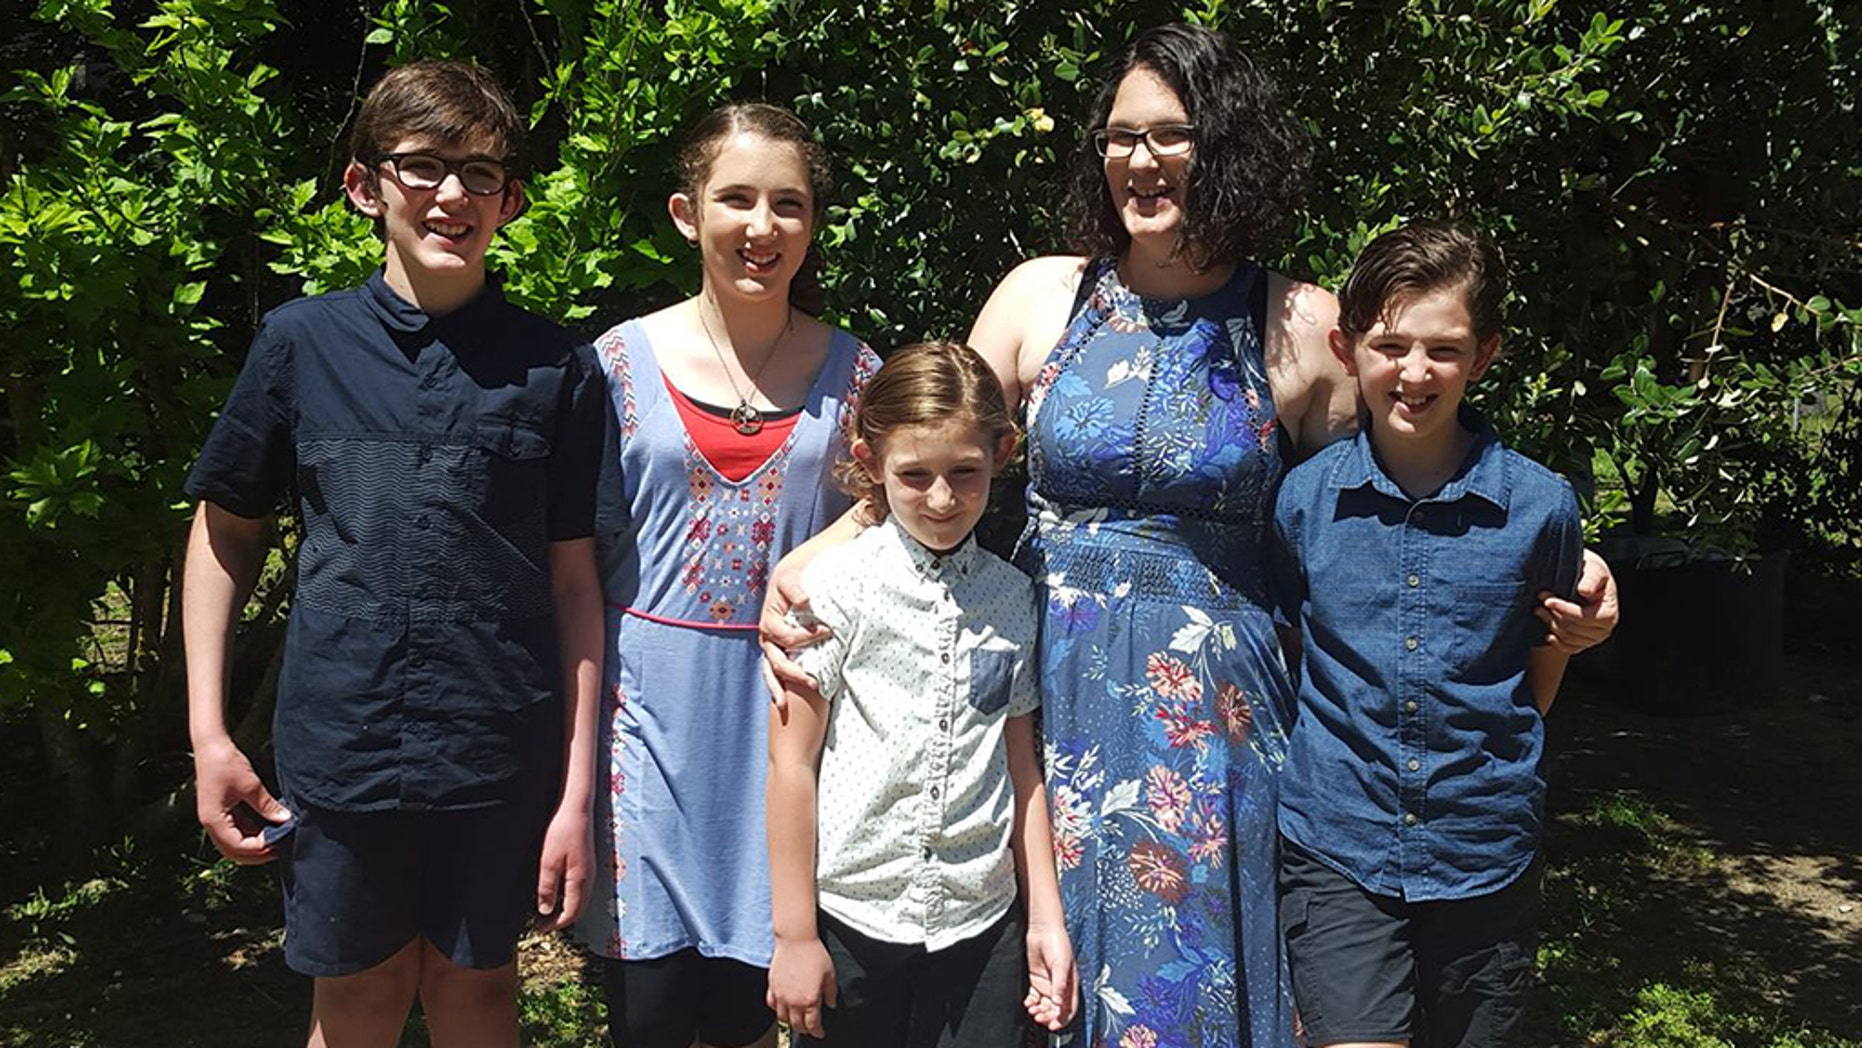 Katrina Miles (second from right) with her children Rylan, Taye, Kayden and Ayre (left to right). They were shot and killed in Australia's worst mass shooting in 22 years.